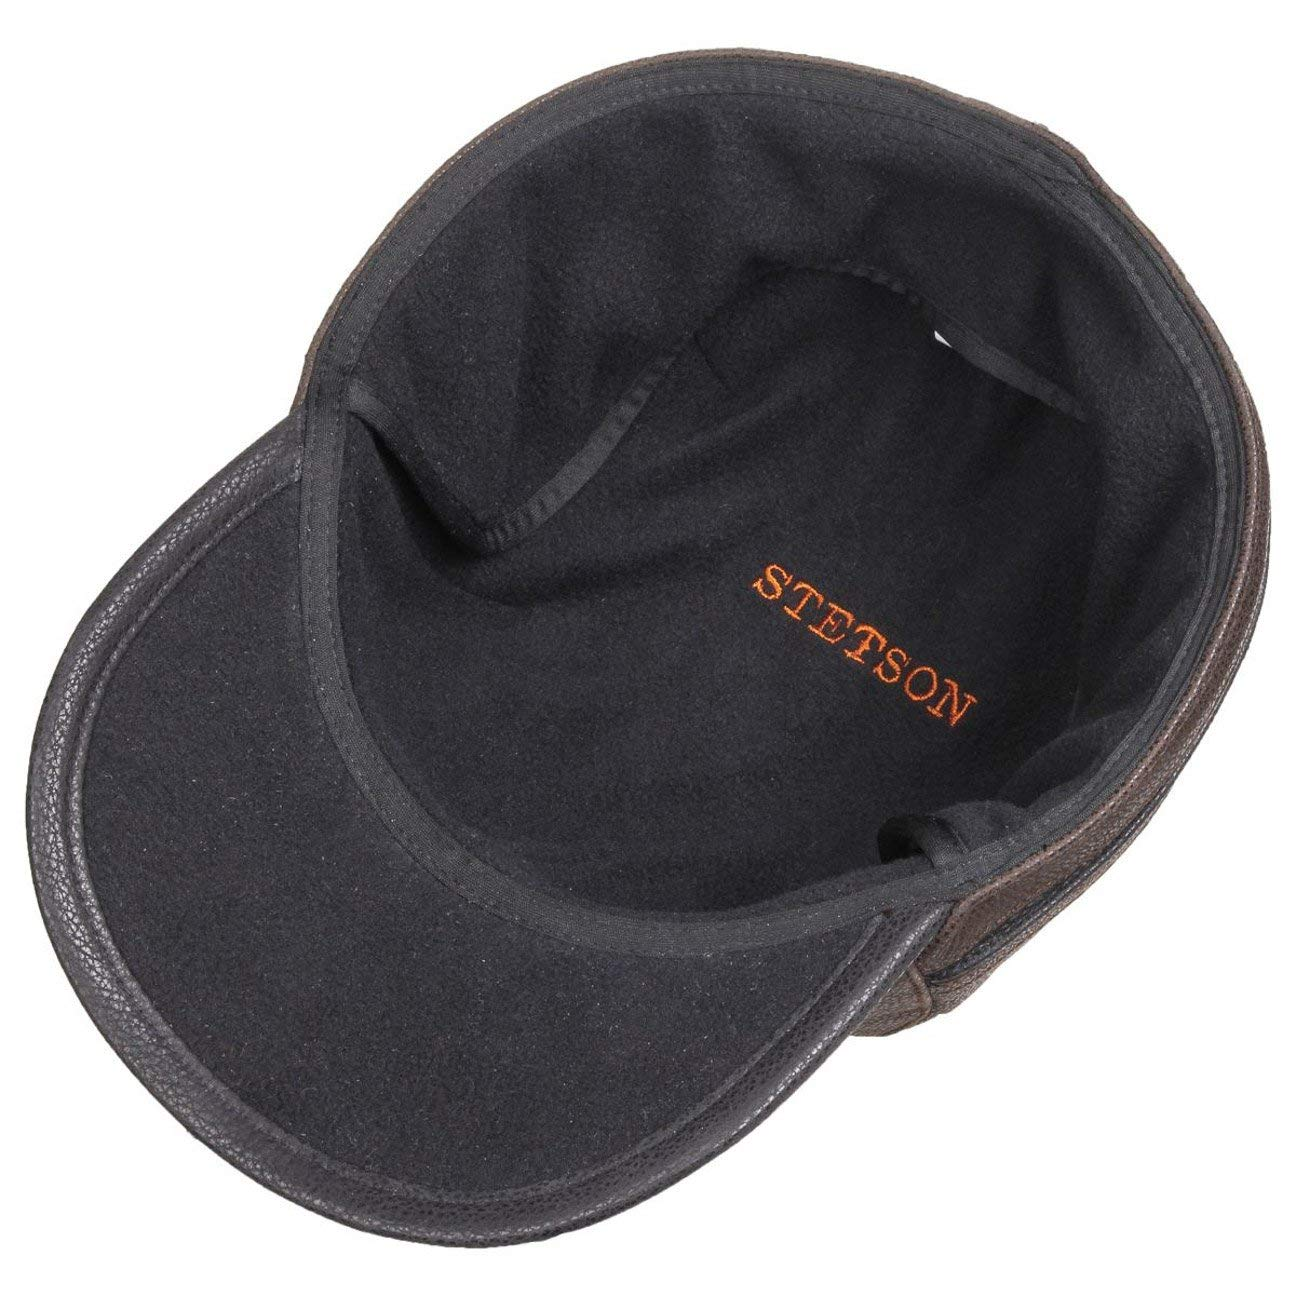 e0c8ff4d3 Stetson Byers Leather Cap Men | Made in Germany Winter Ear Flap hat Baseball  Closed Back, with Peak, Flaps, Lining Autumn-Winter: Amazon.co.uk: Clothing